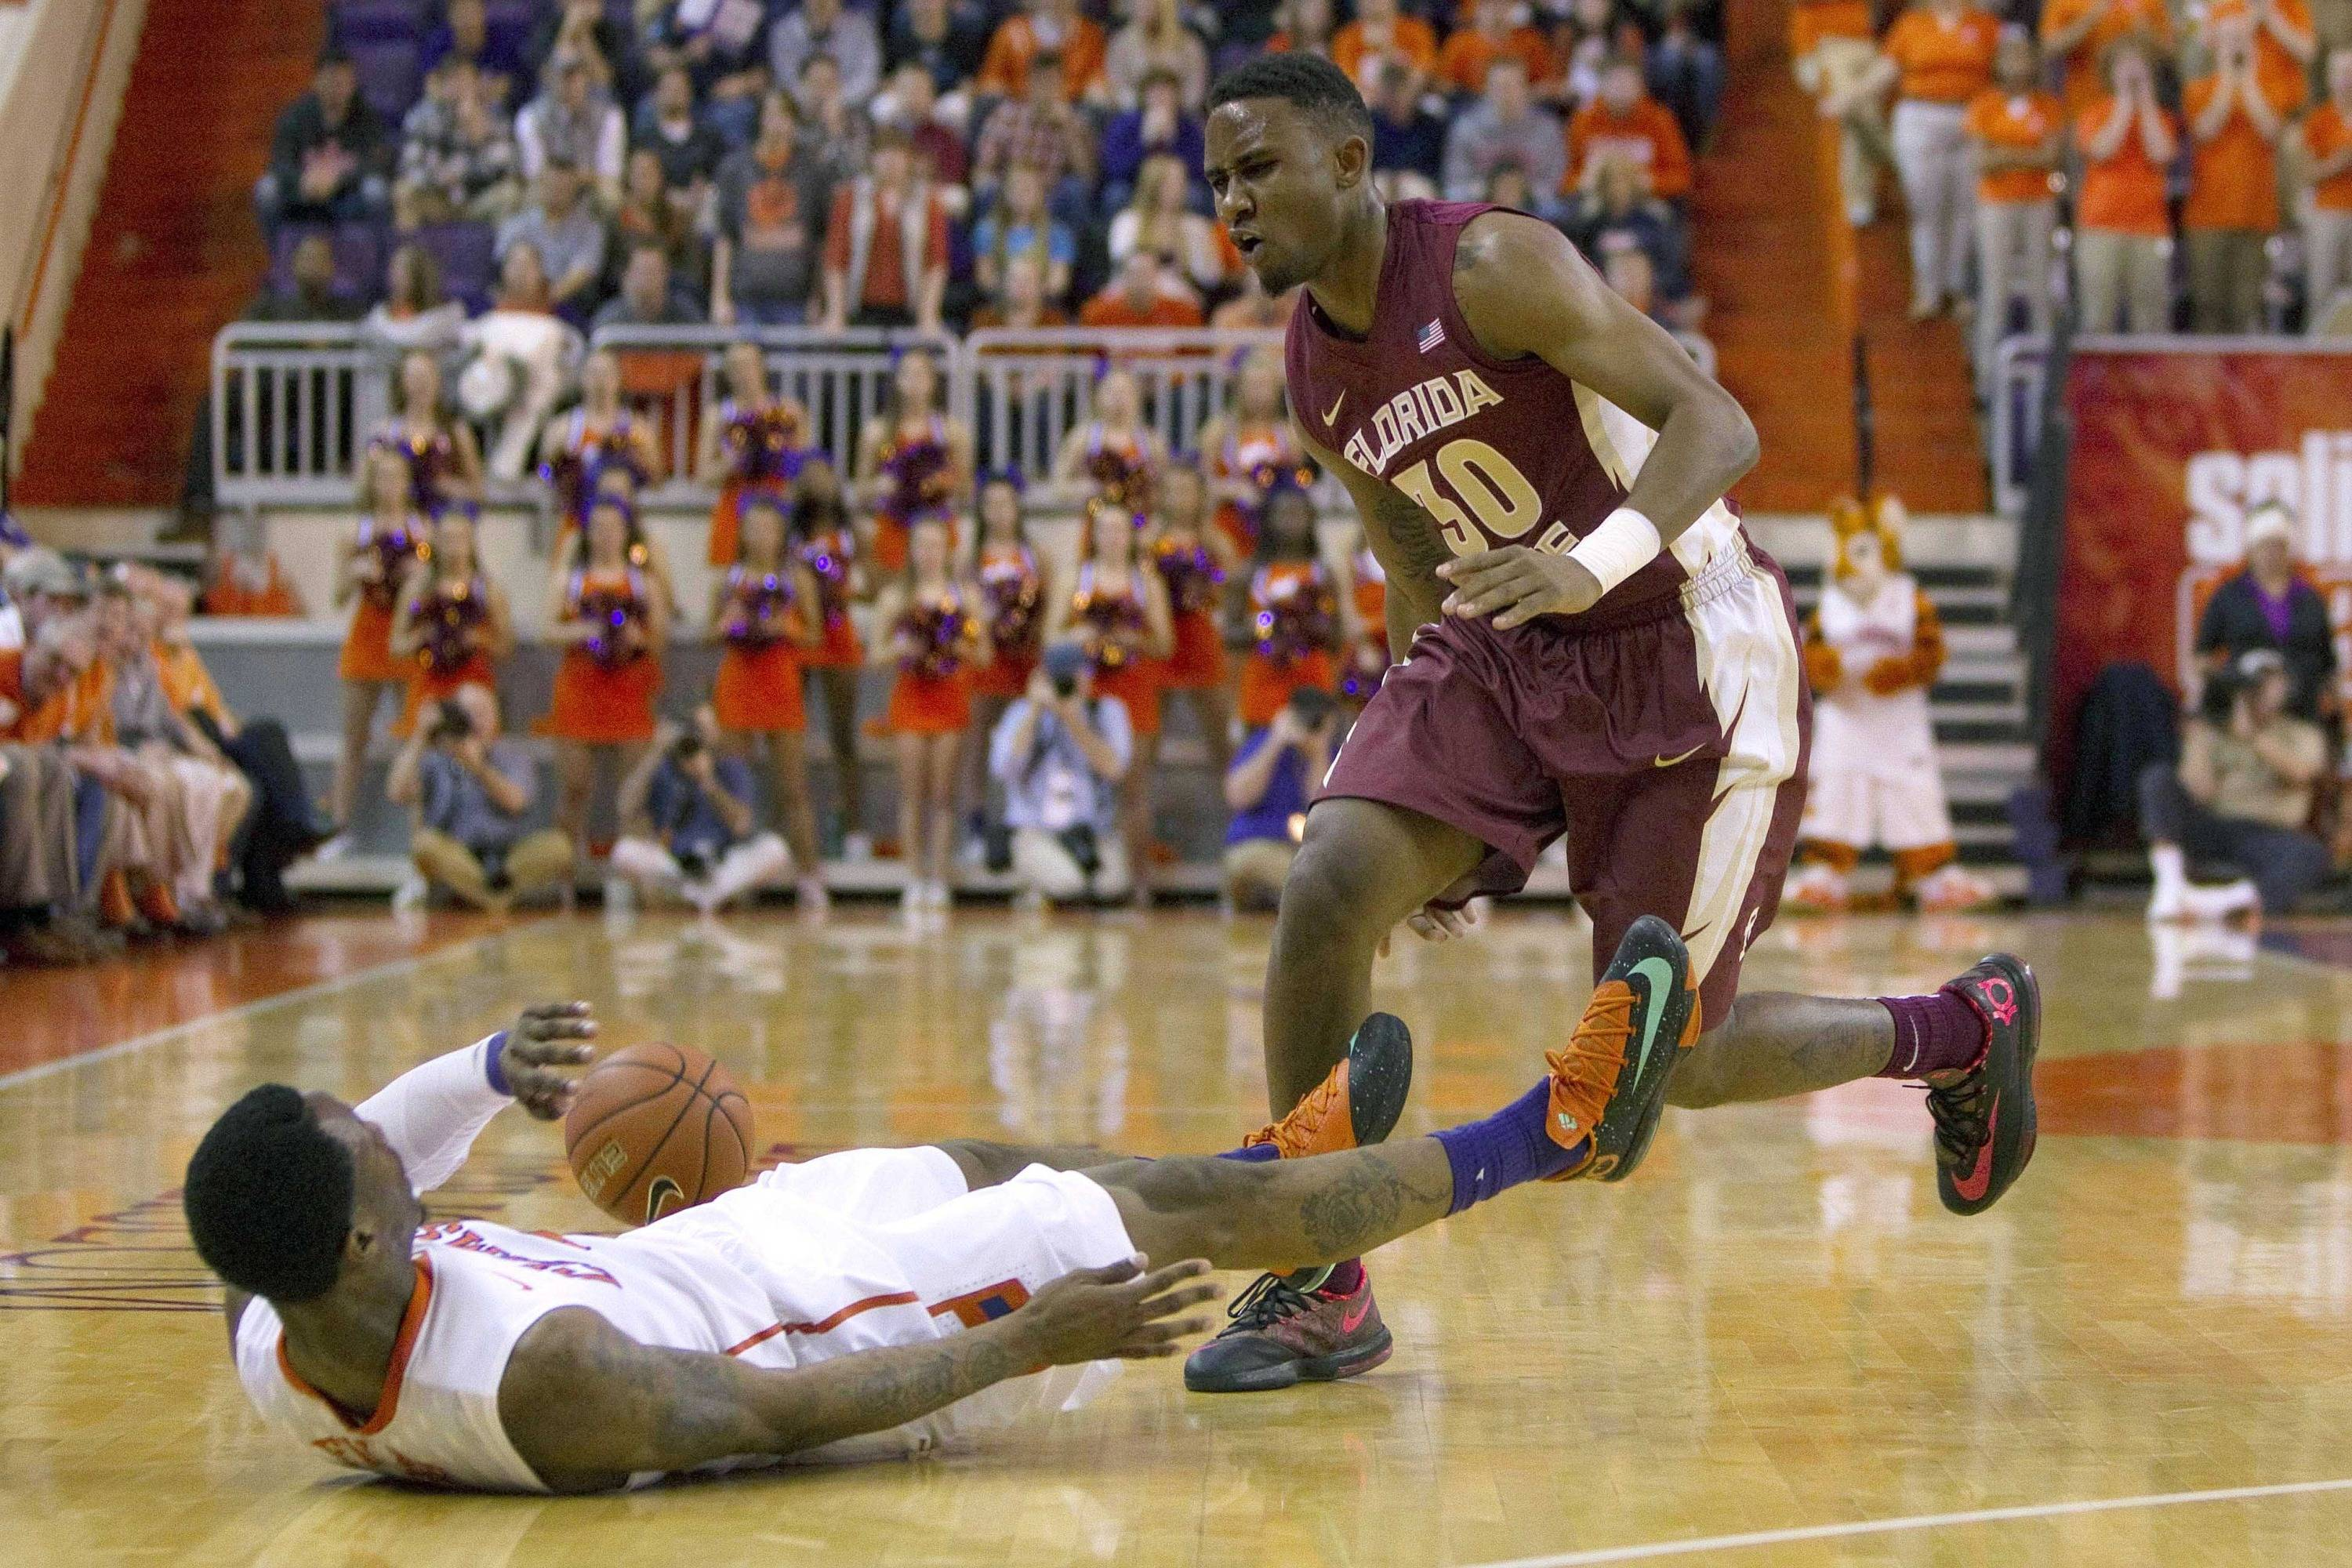 Jan 9, 2014; Clemson, SC, USA; Clemson Tigers guard Adonis Filer (3) is knocked down by Florida State Seminoles guard Ian Miller (30) during the first half at J.C. Littlejohn Coliseum. Mandatory Credit: Joshua S. Kelly-USA TODAY Sports